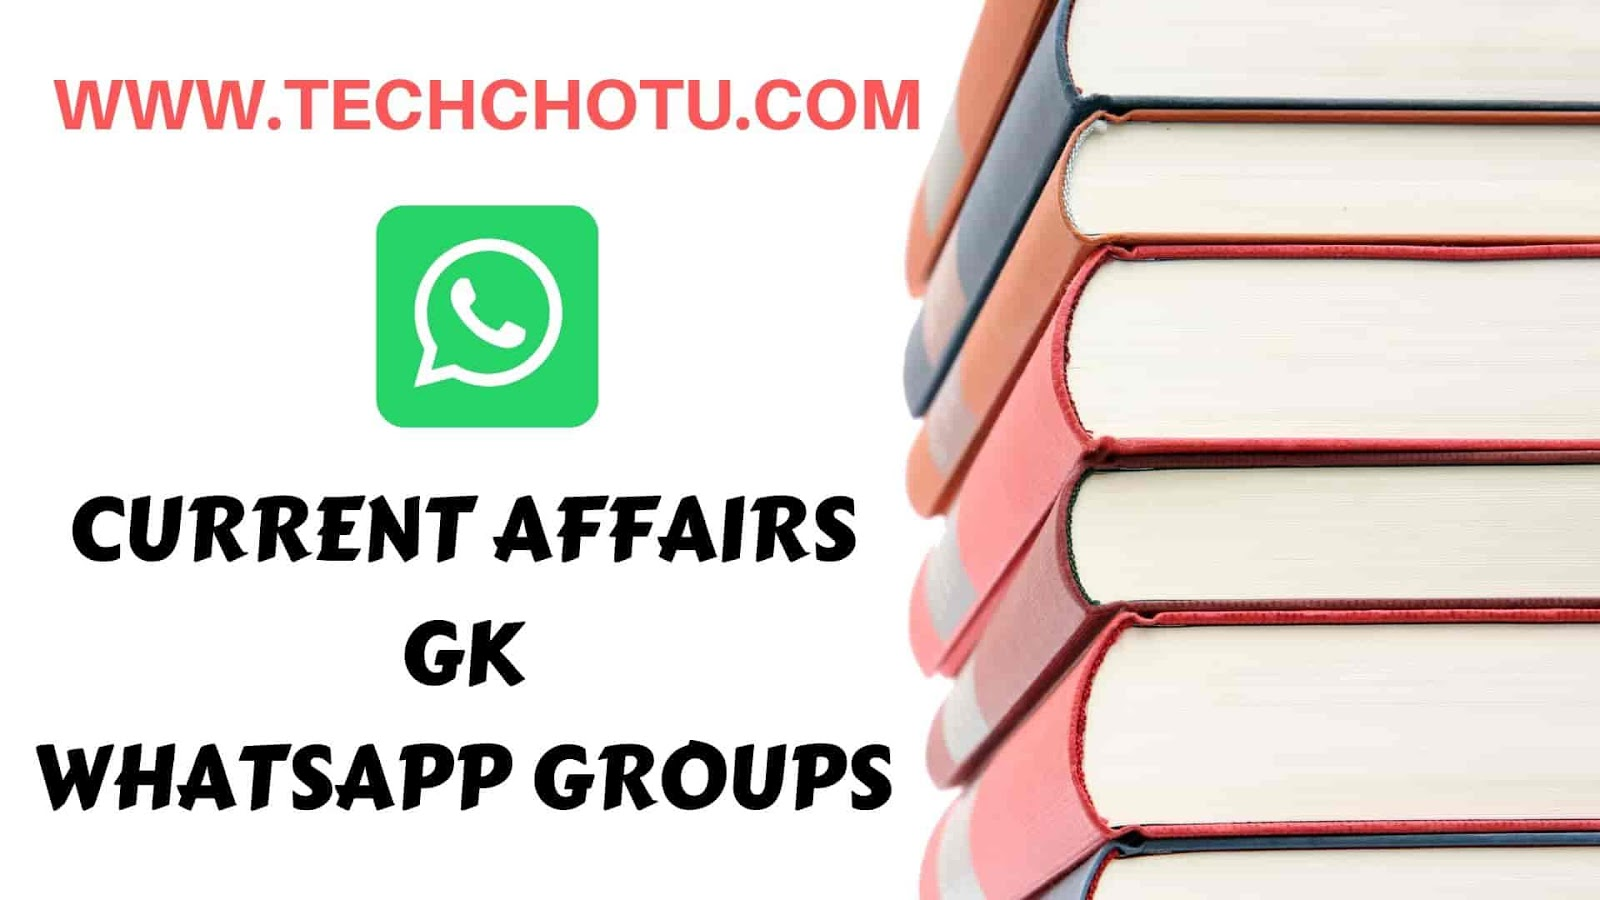 CURRENT AFFAIRS/GK WHATSAPP GROUP LINKS - TECHCHOTU 2019